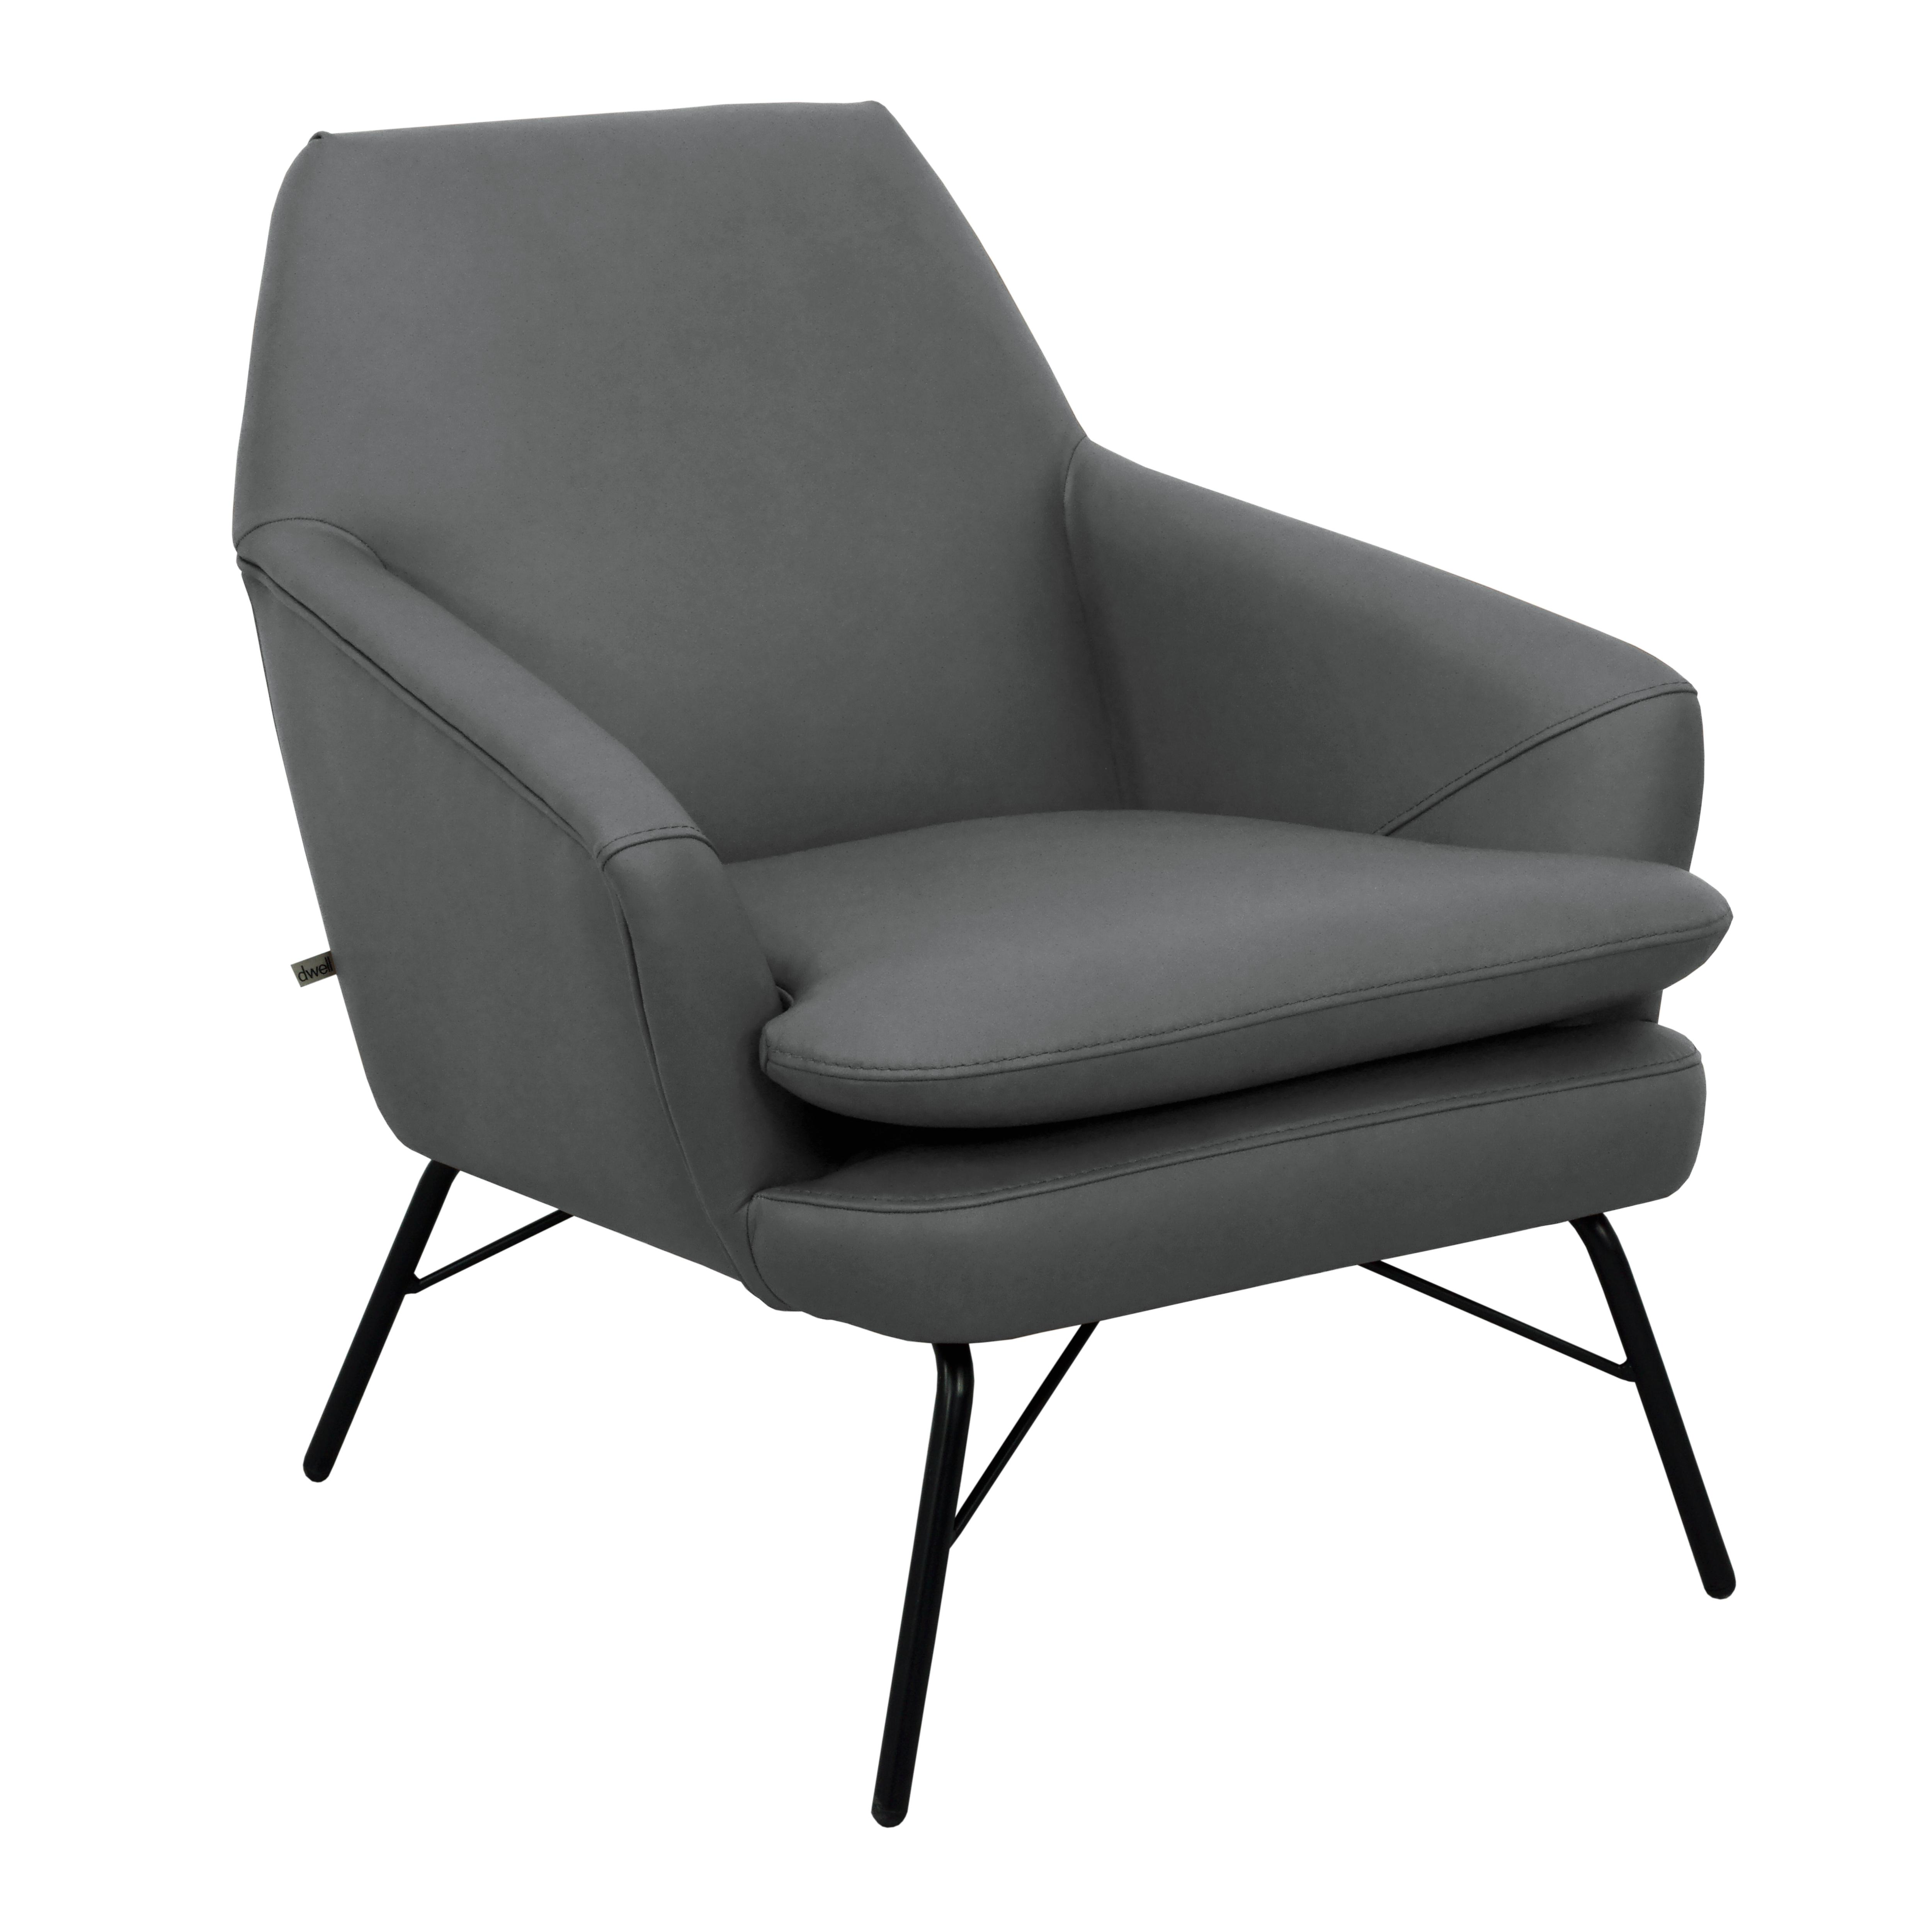 Acuta accent chair mollis leather light grey